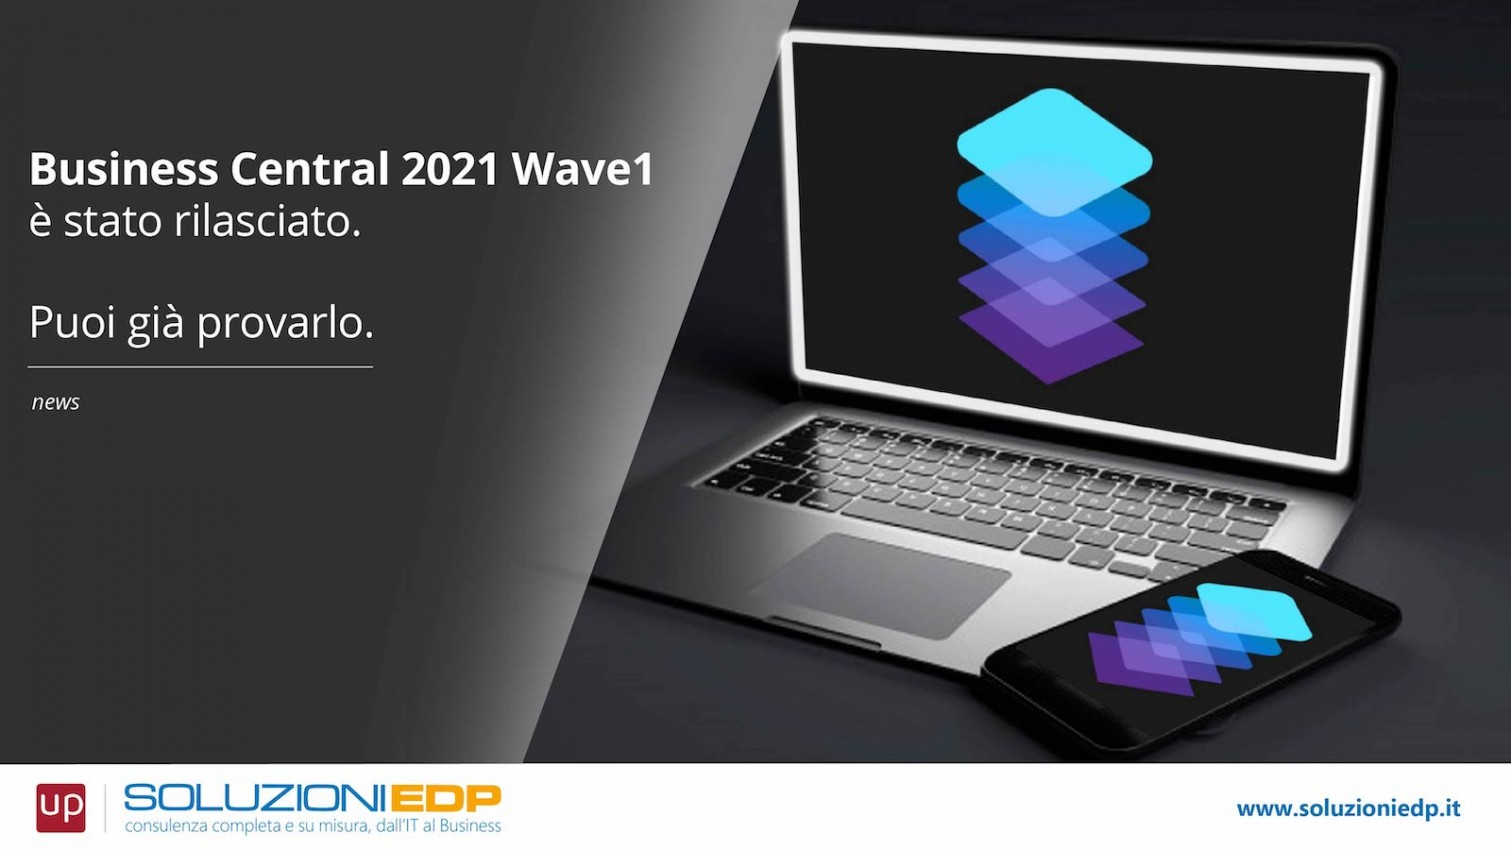 thumb_A_BC2021_wave_1_release_1618583007.jpg